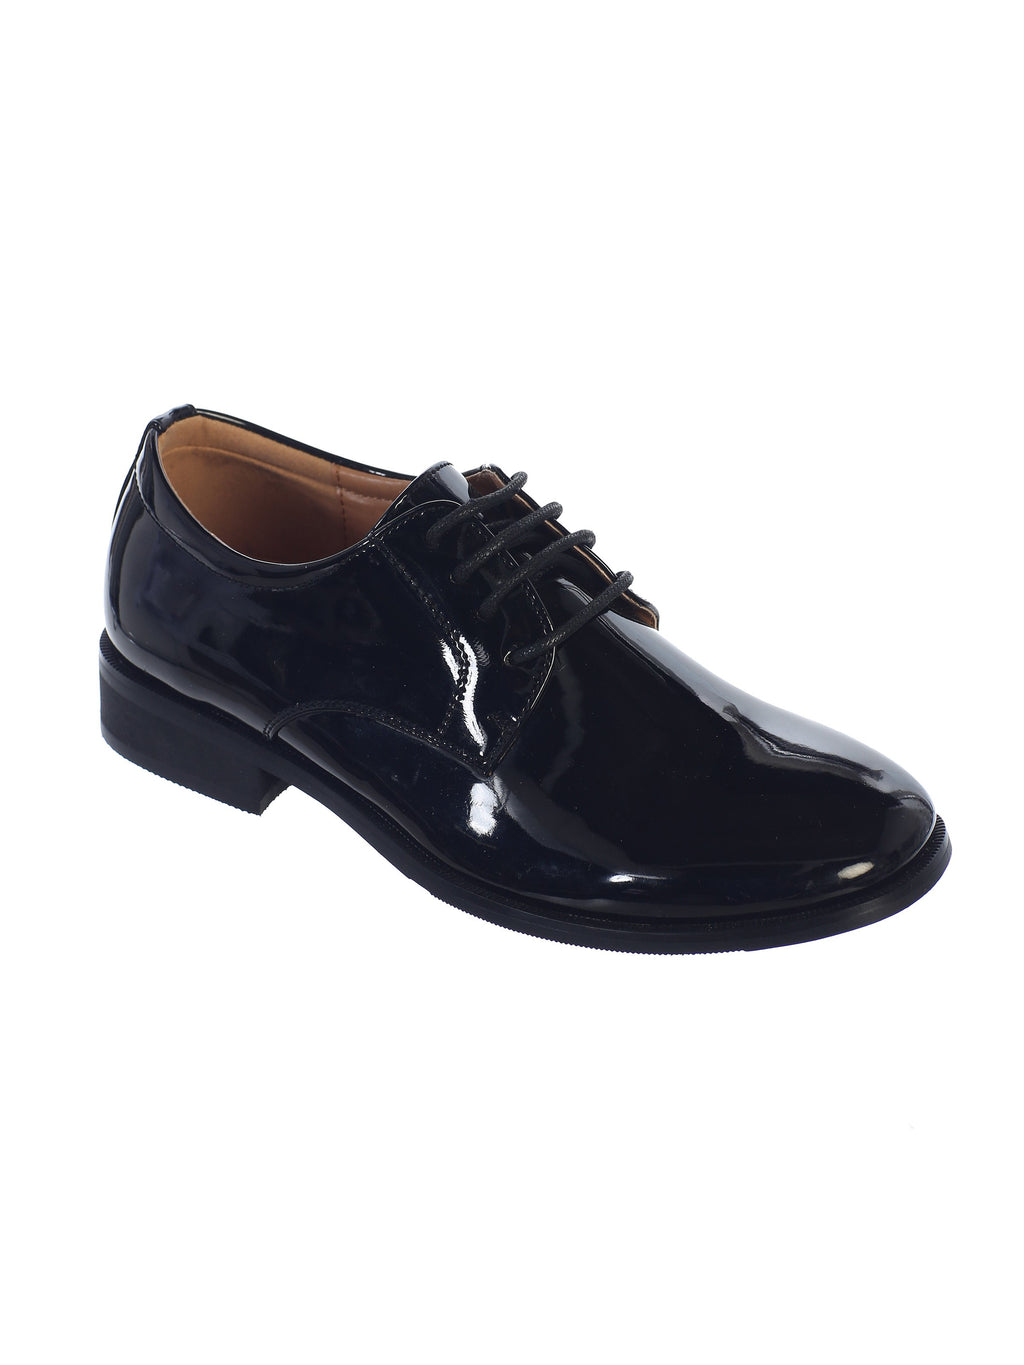 Little Boys Shiny Black Tuxedo Shoes, Round Toe Style in Infant to Boys Sizes